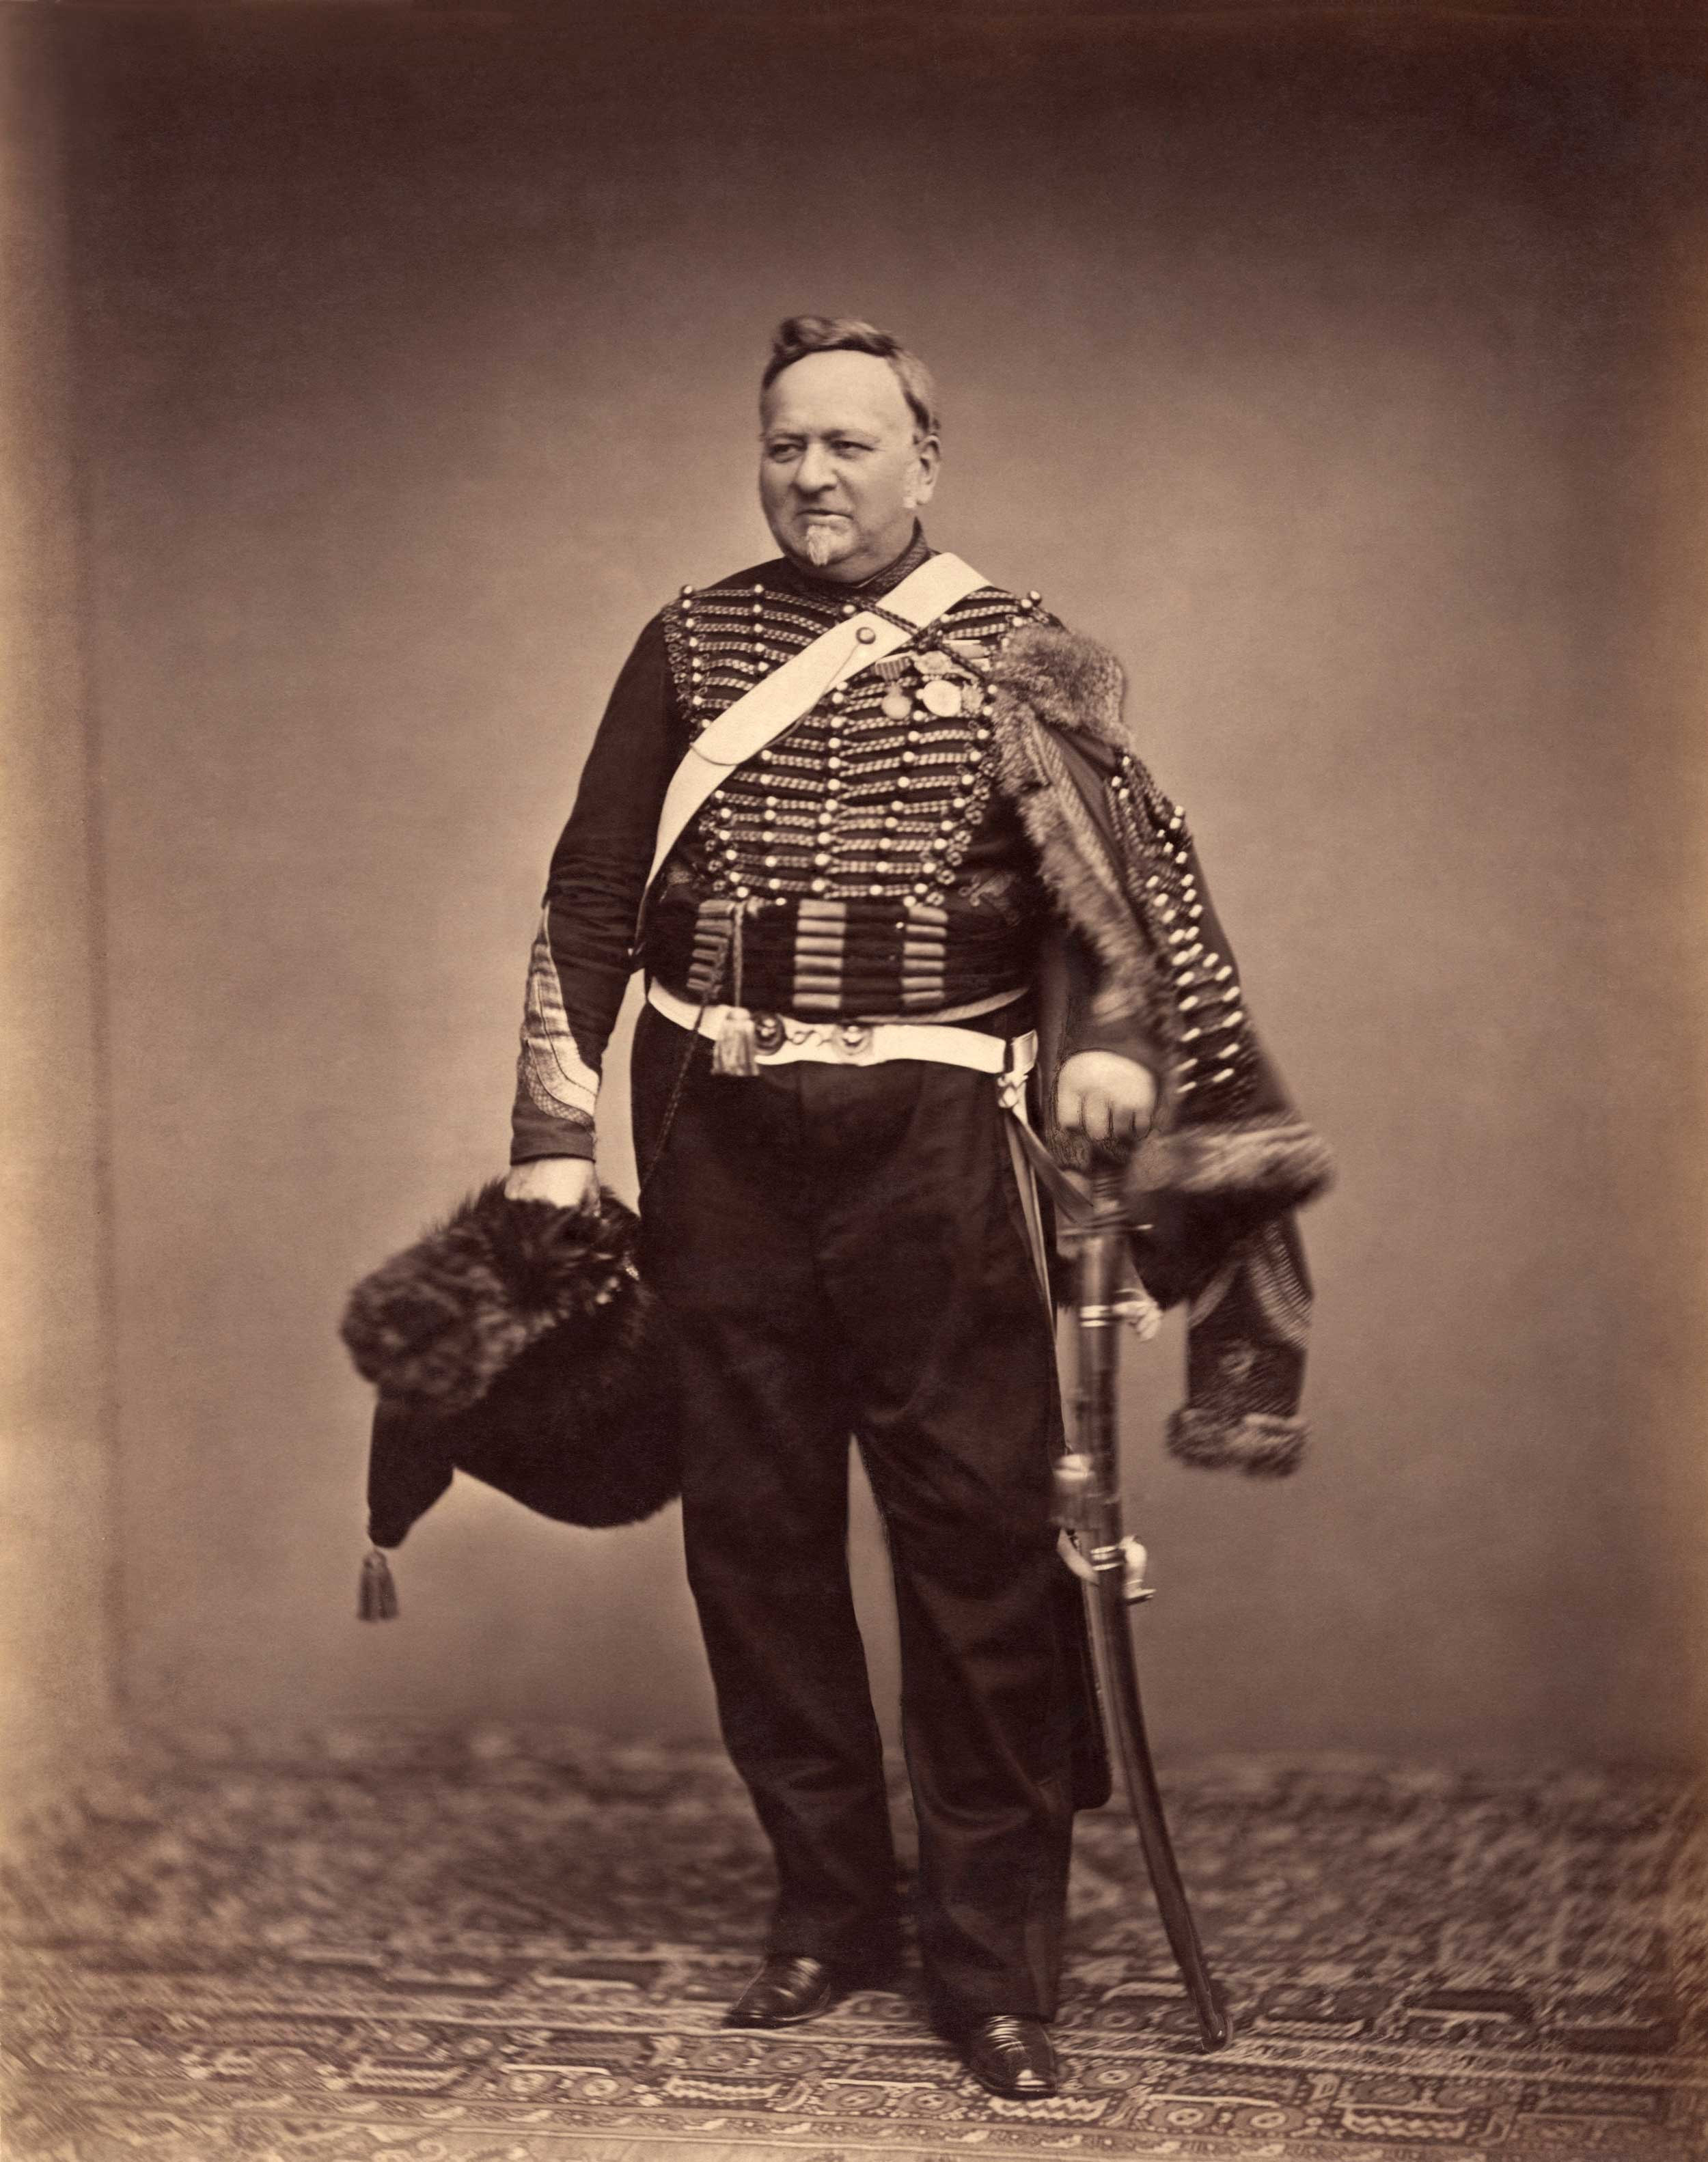 Quartermaster Sergeant Delignon, in the uniform of a Mounted Chasseur of the Guard, 1809-1815